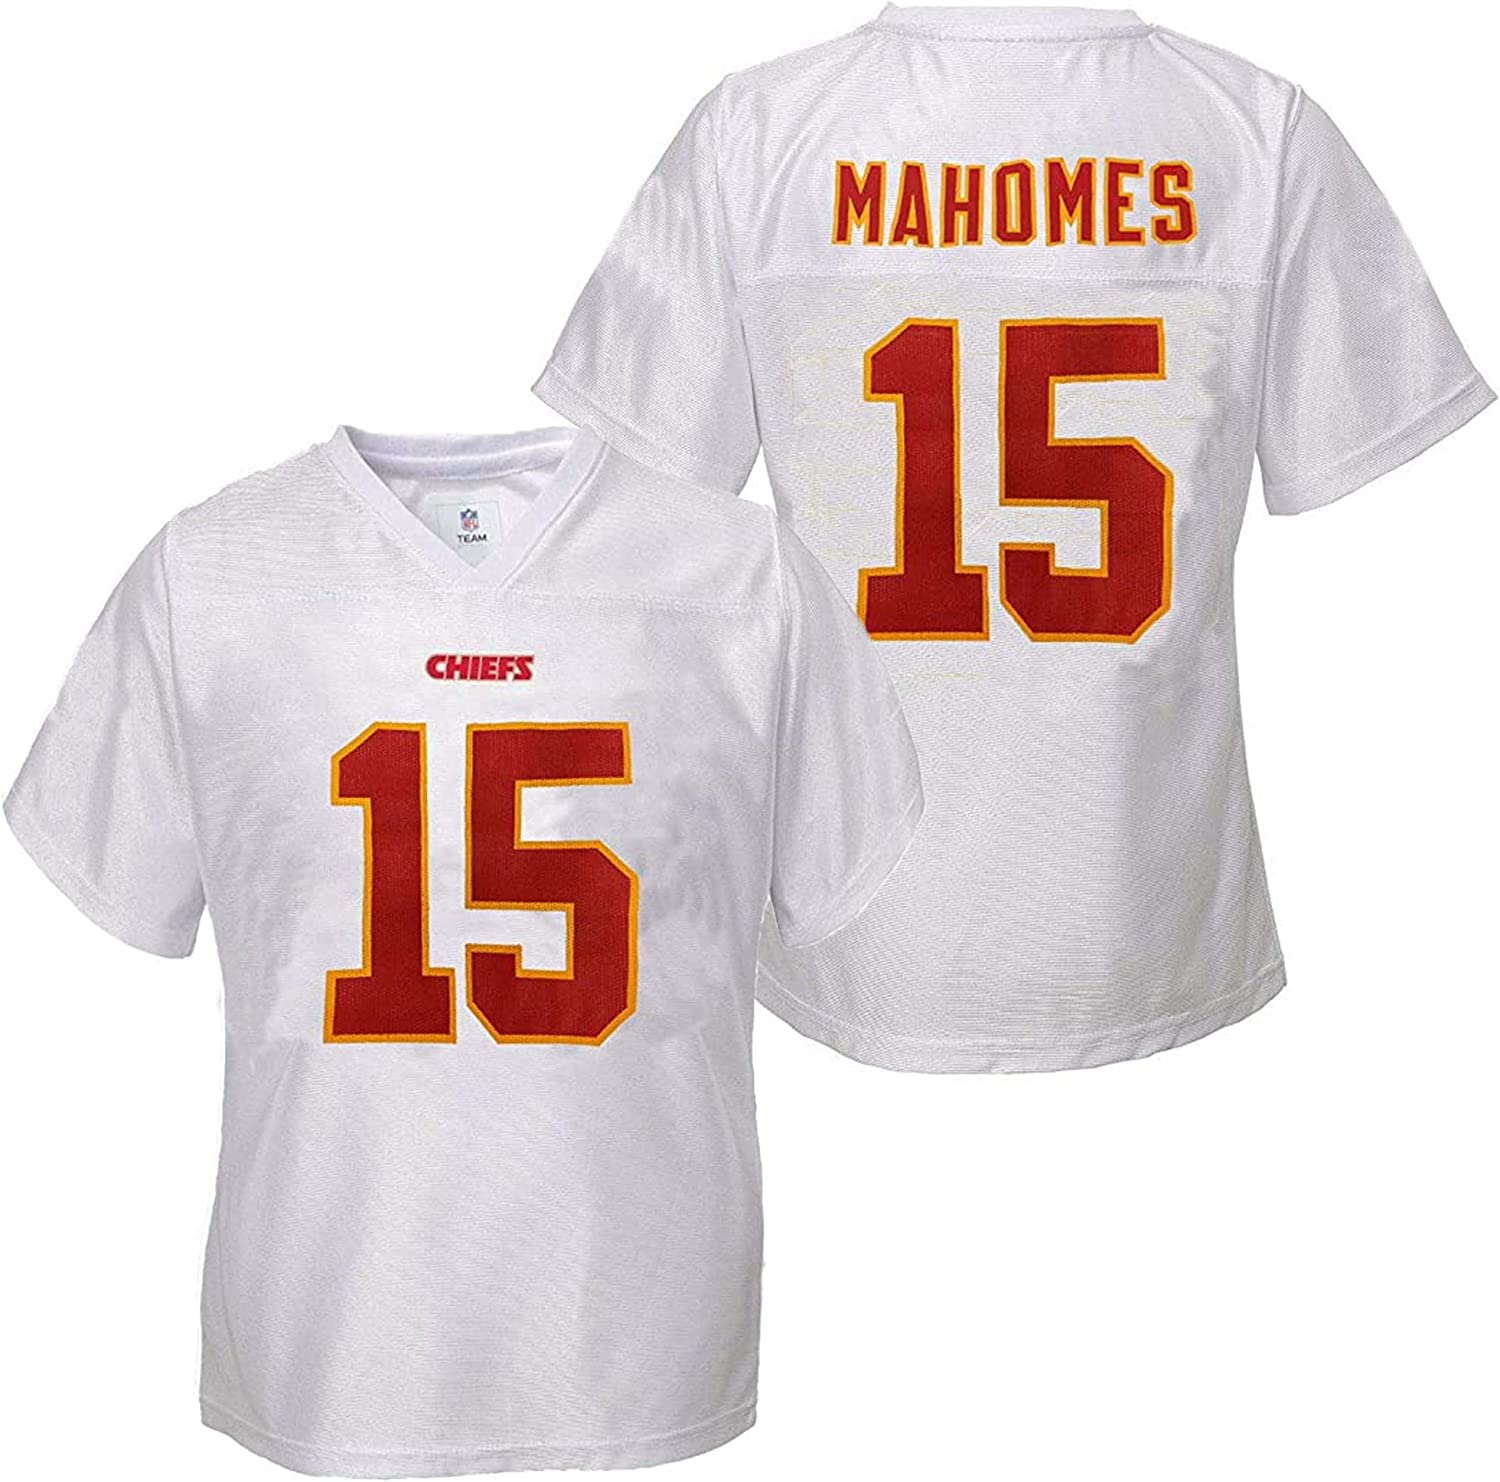 Outerstuff Patrick Mahomes Kansas City Chiefs #15 Red Youth Player Home Jersey